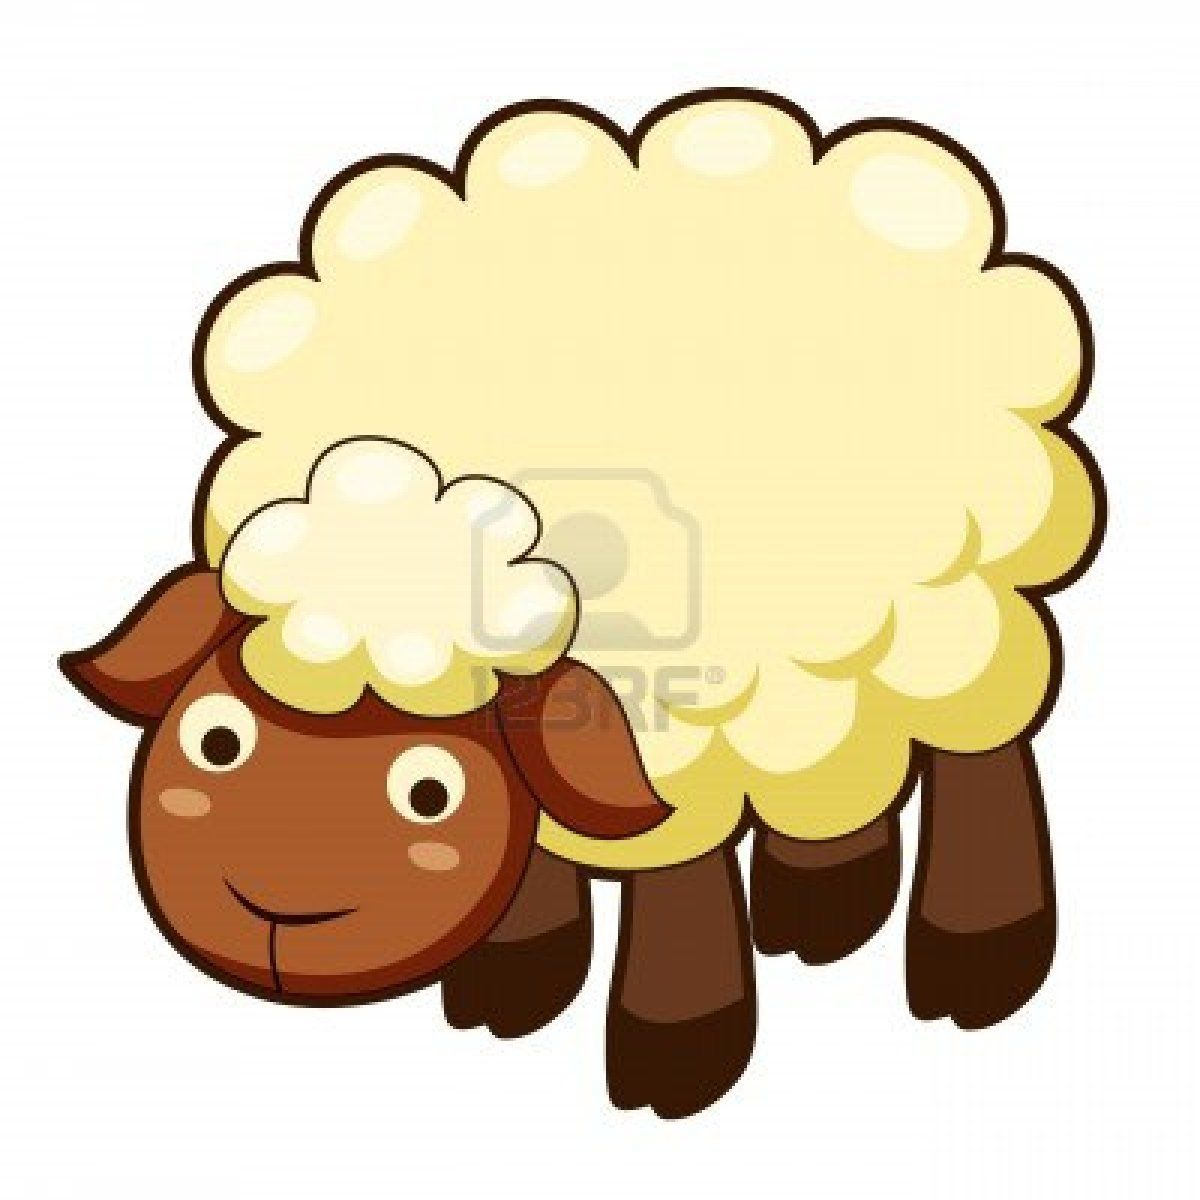 cute sheep images | cute sheep clipart black and white , ipad mini ... for Baby Lamb Clipart  150ifm